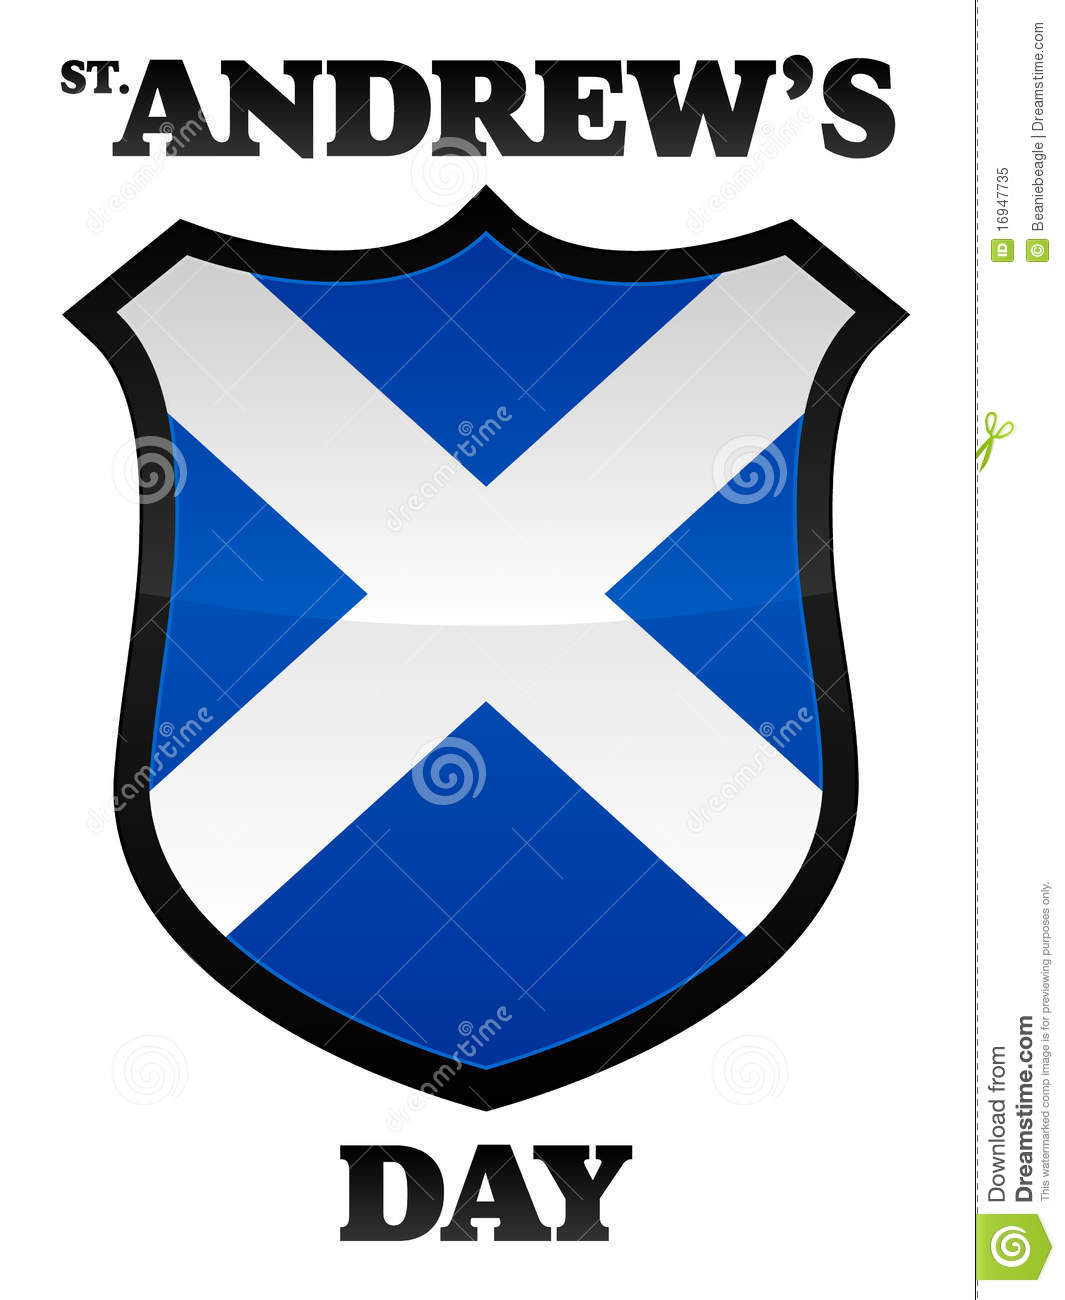 55 best pictures and images of saint andrew u0027s day wishes